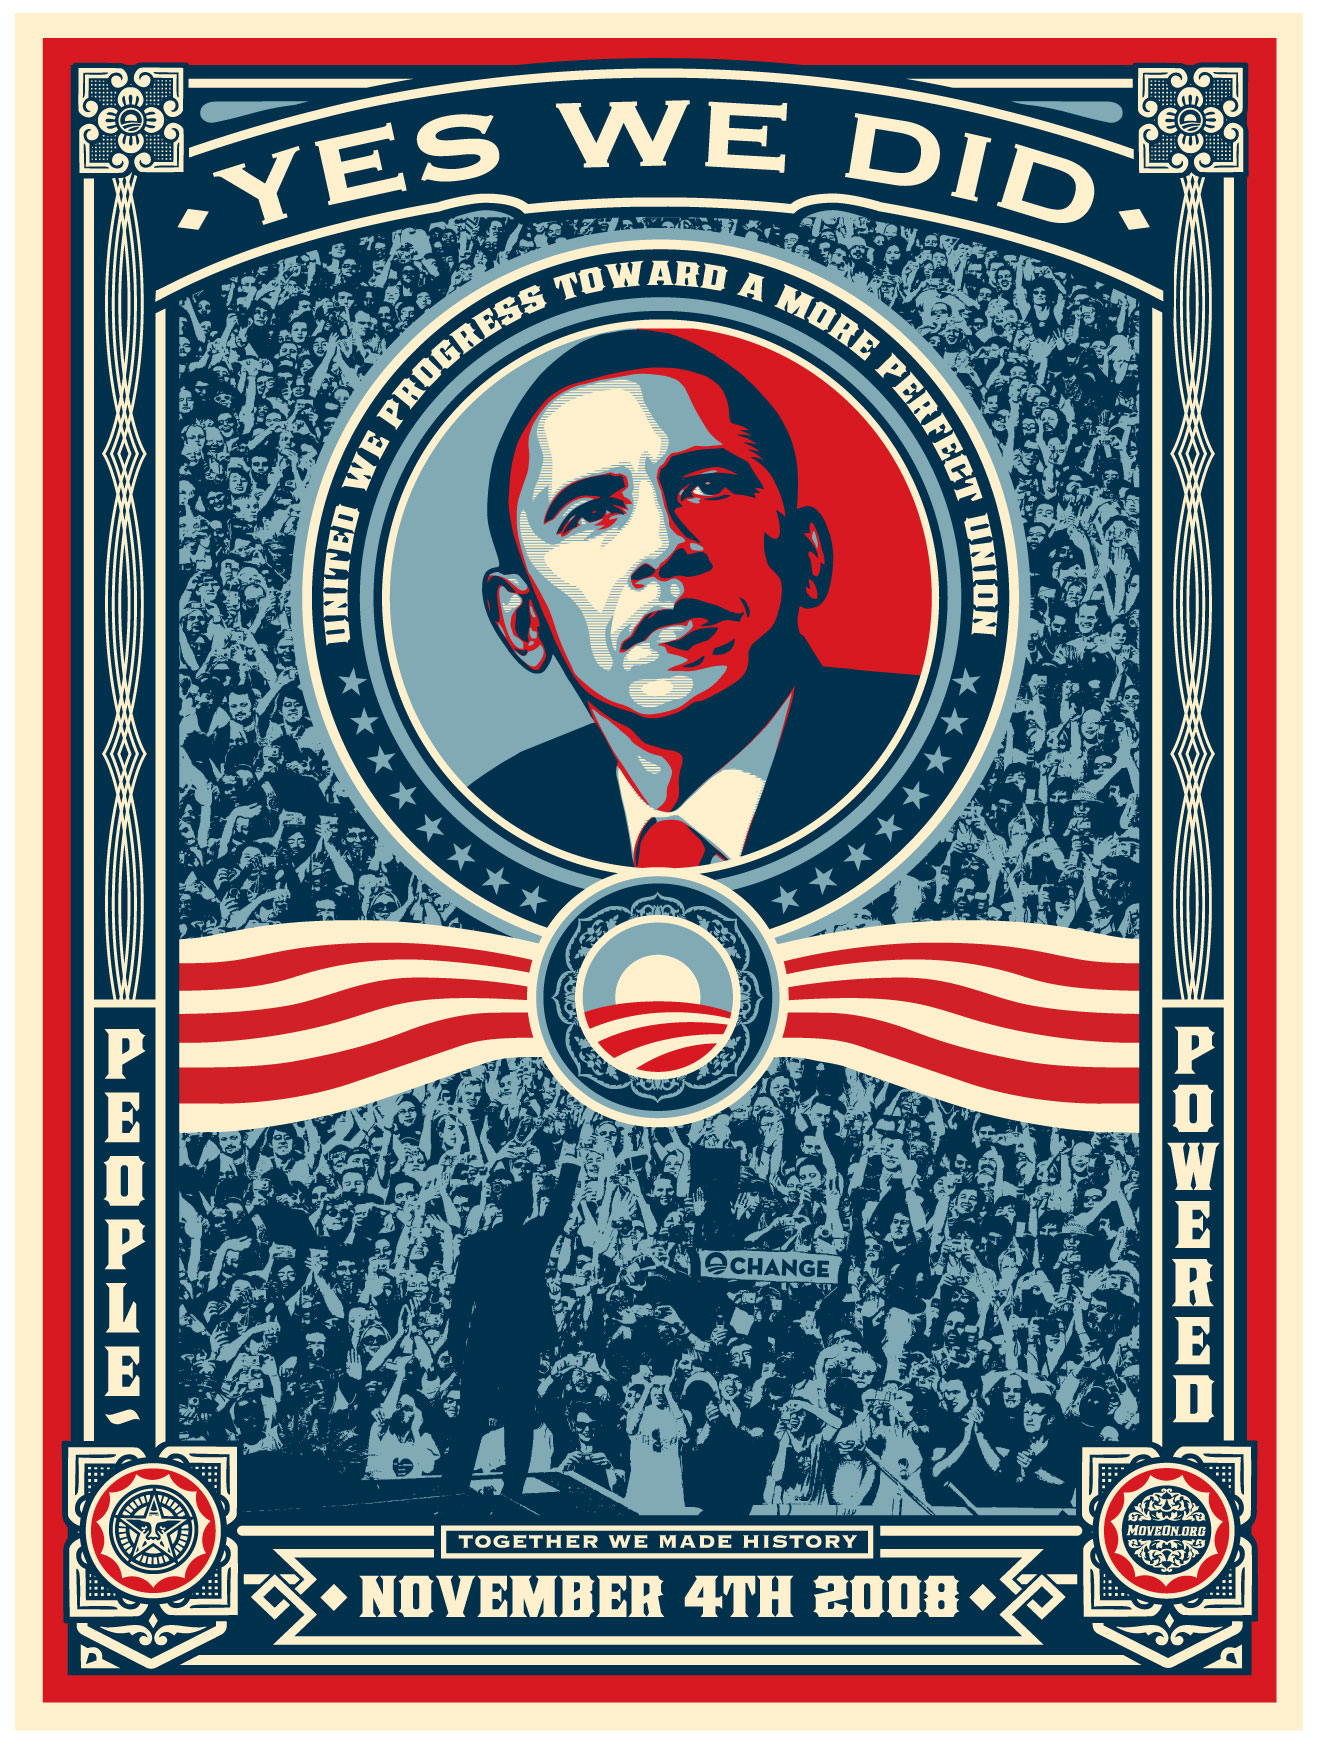 Shepard Fairey / Obey Giant Obama Campaign Posters | Just ... Obama Campaign Poster Official